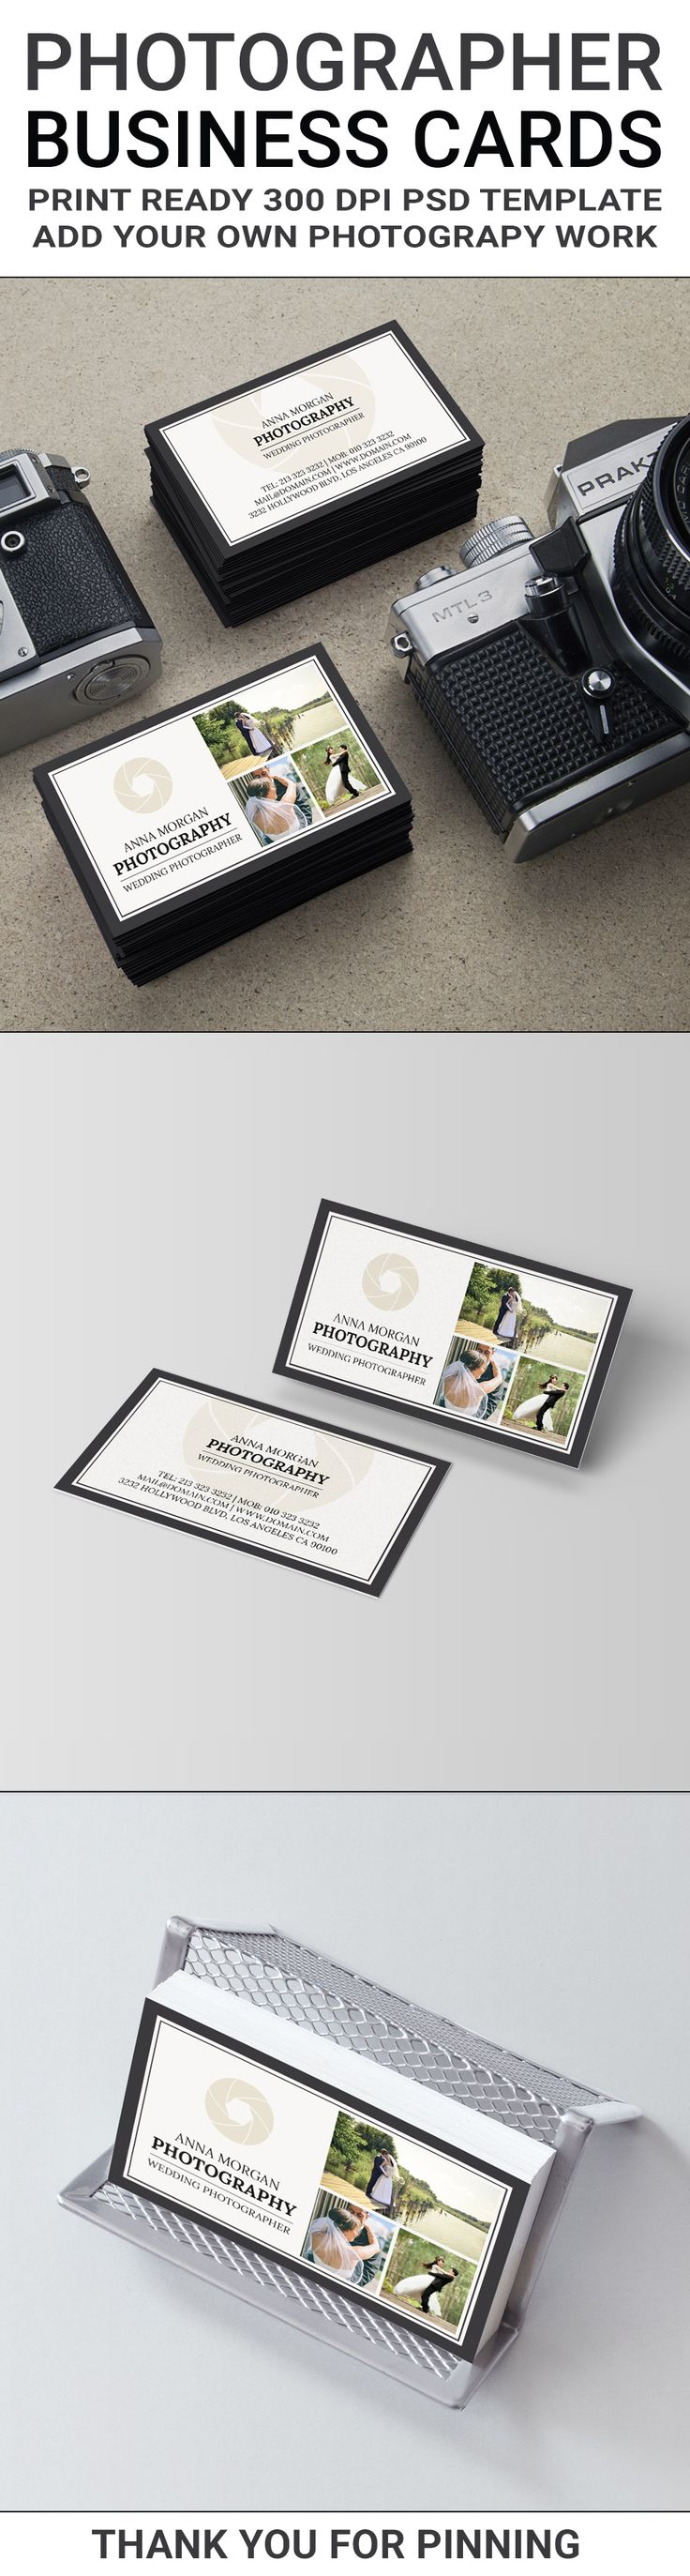 Best 25+ Examples of business cards ideas on Pinterest | Embossed ...